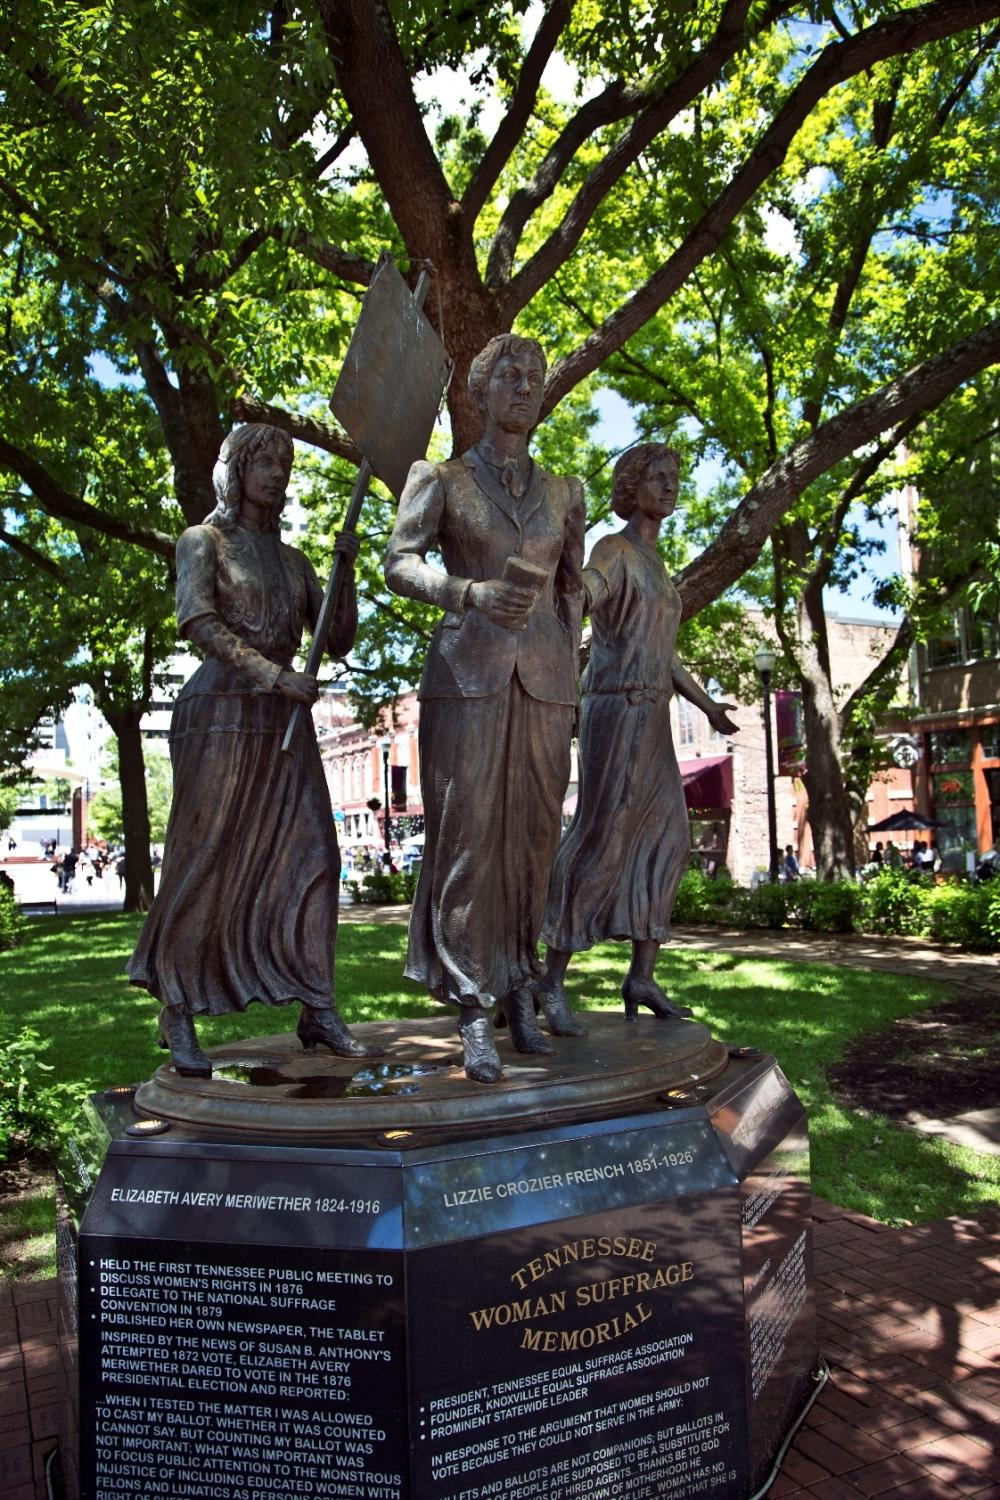 Tennessee Woman Suffrage Memorial, Market Square, Knoxville